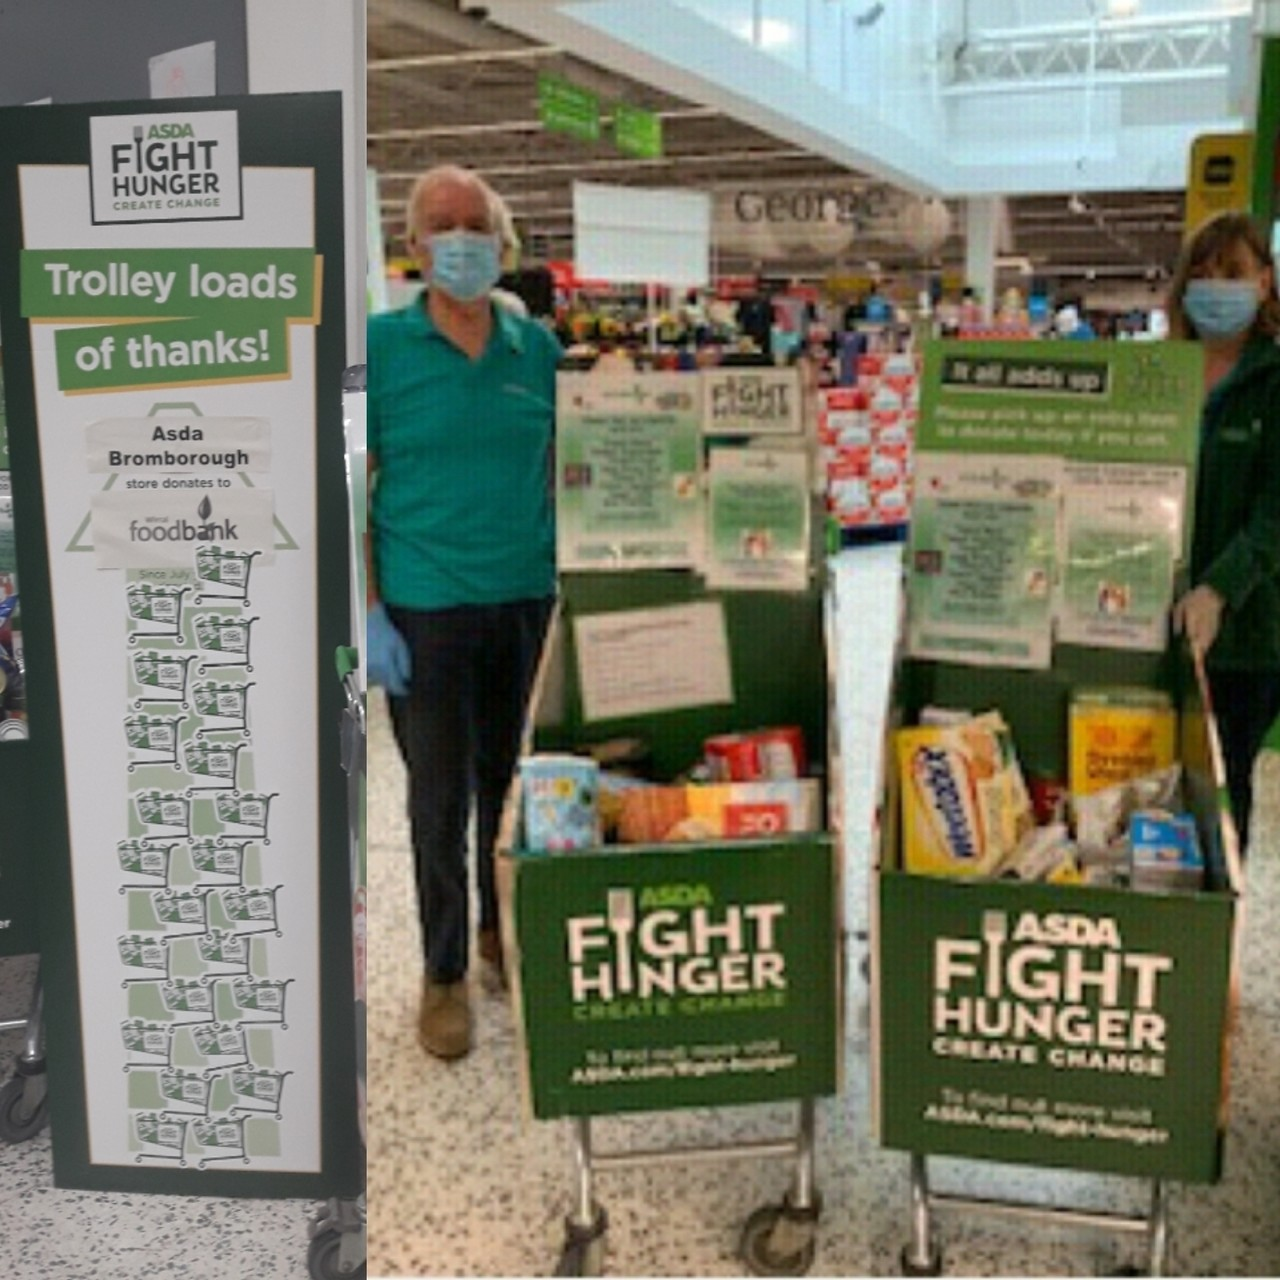 Fight Hunger Create Change with Wirral Foodbank | Asda Bromborough